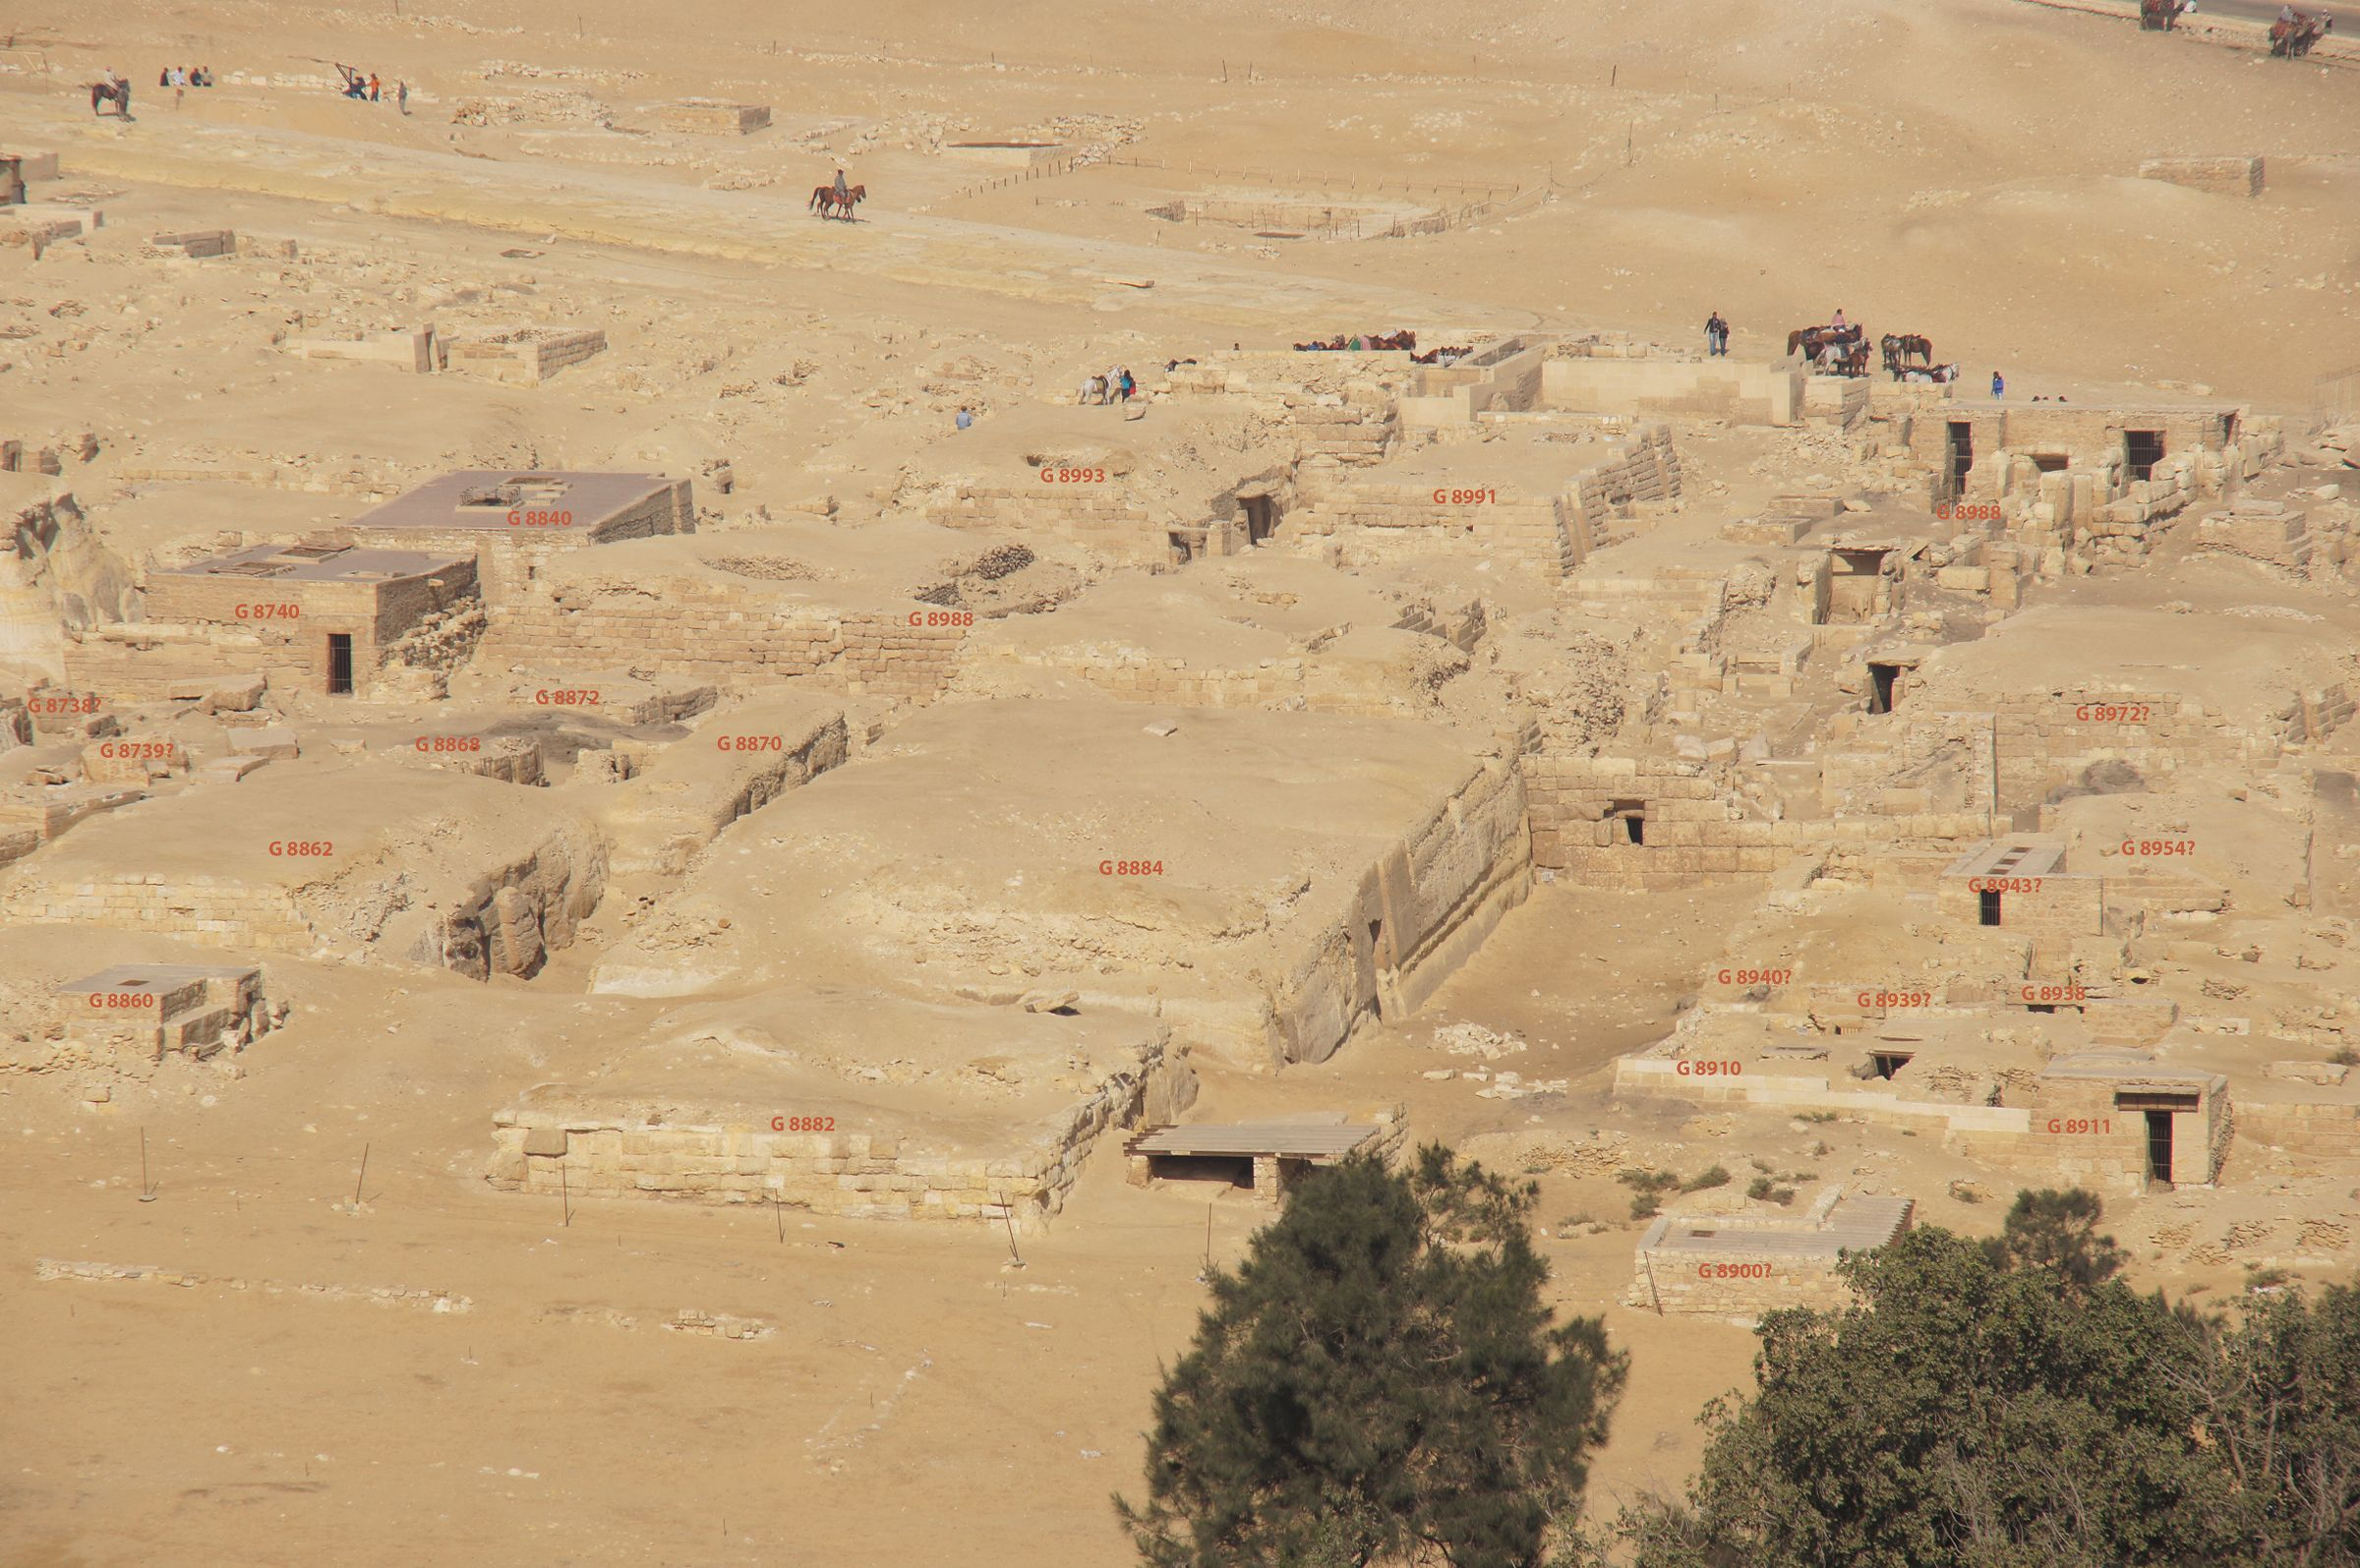 Central Field (Hassan): Site: Giza; View: G 8738, G 8739, G 8740, G 8840, G 8860, G 8862, G 8868, G 8870, G 8872, G 8988, G 8887, G 8888, G 8893, G 8882, G 8884, G 8990, G 8989, G 8992, G 8991, G 8900, G 8910, G 8911, G 8912, G 8940, G 8939, G 8938, G 8943, G 8954, G 8972